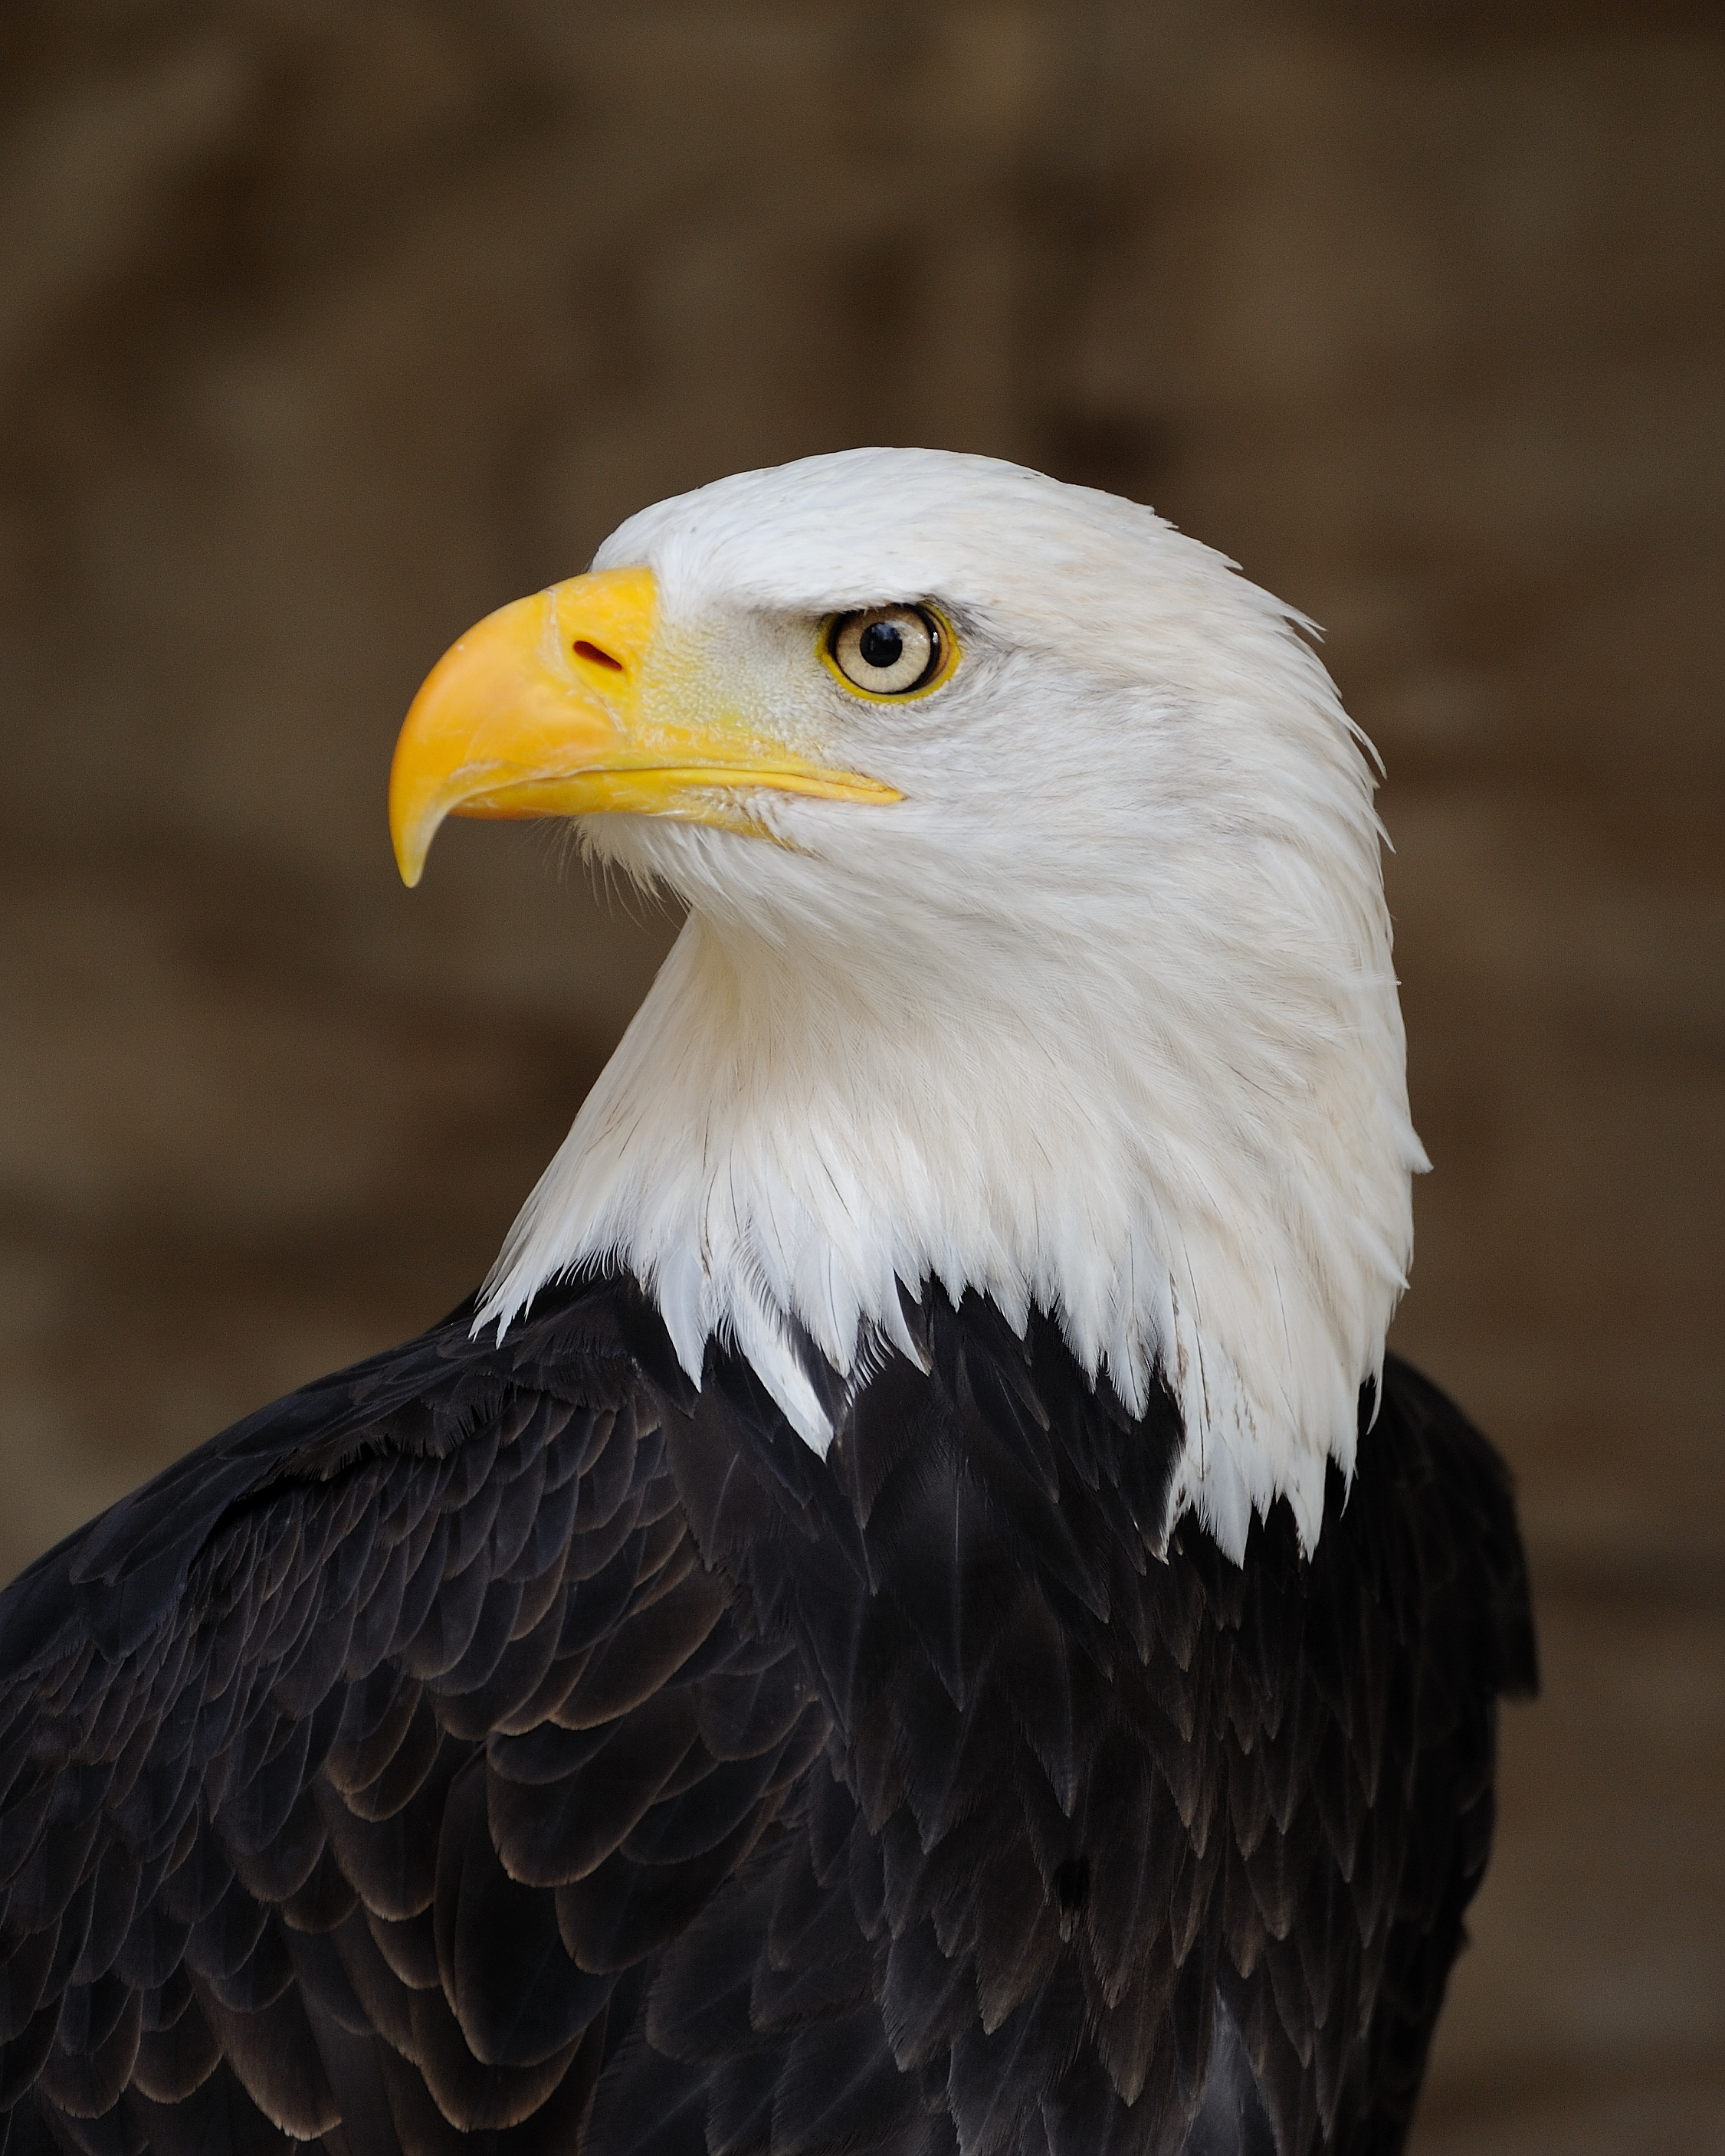 The bald eagle has been the national bird of the United States since 1782.